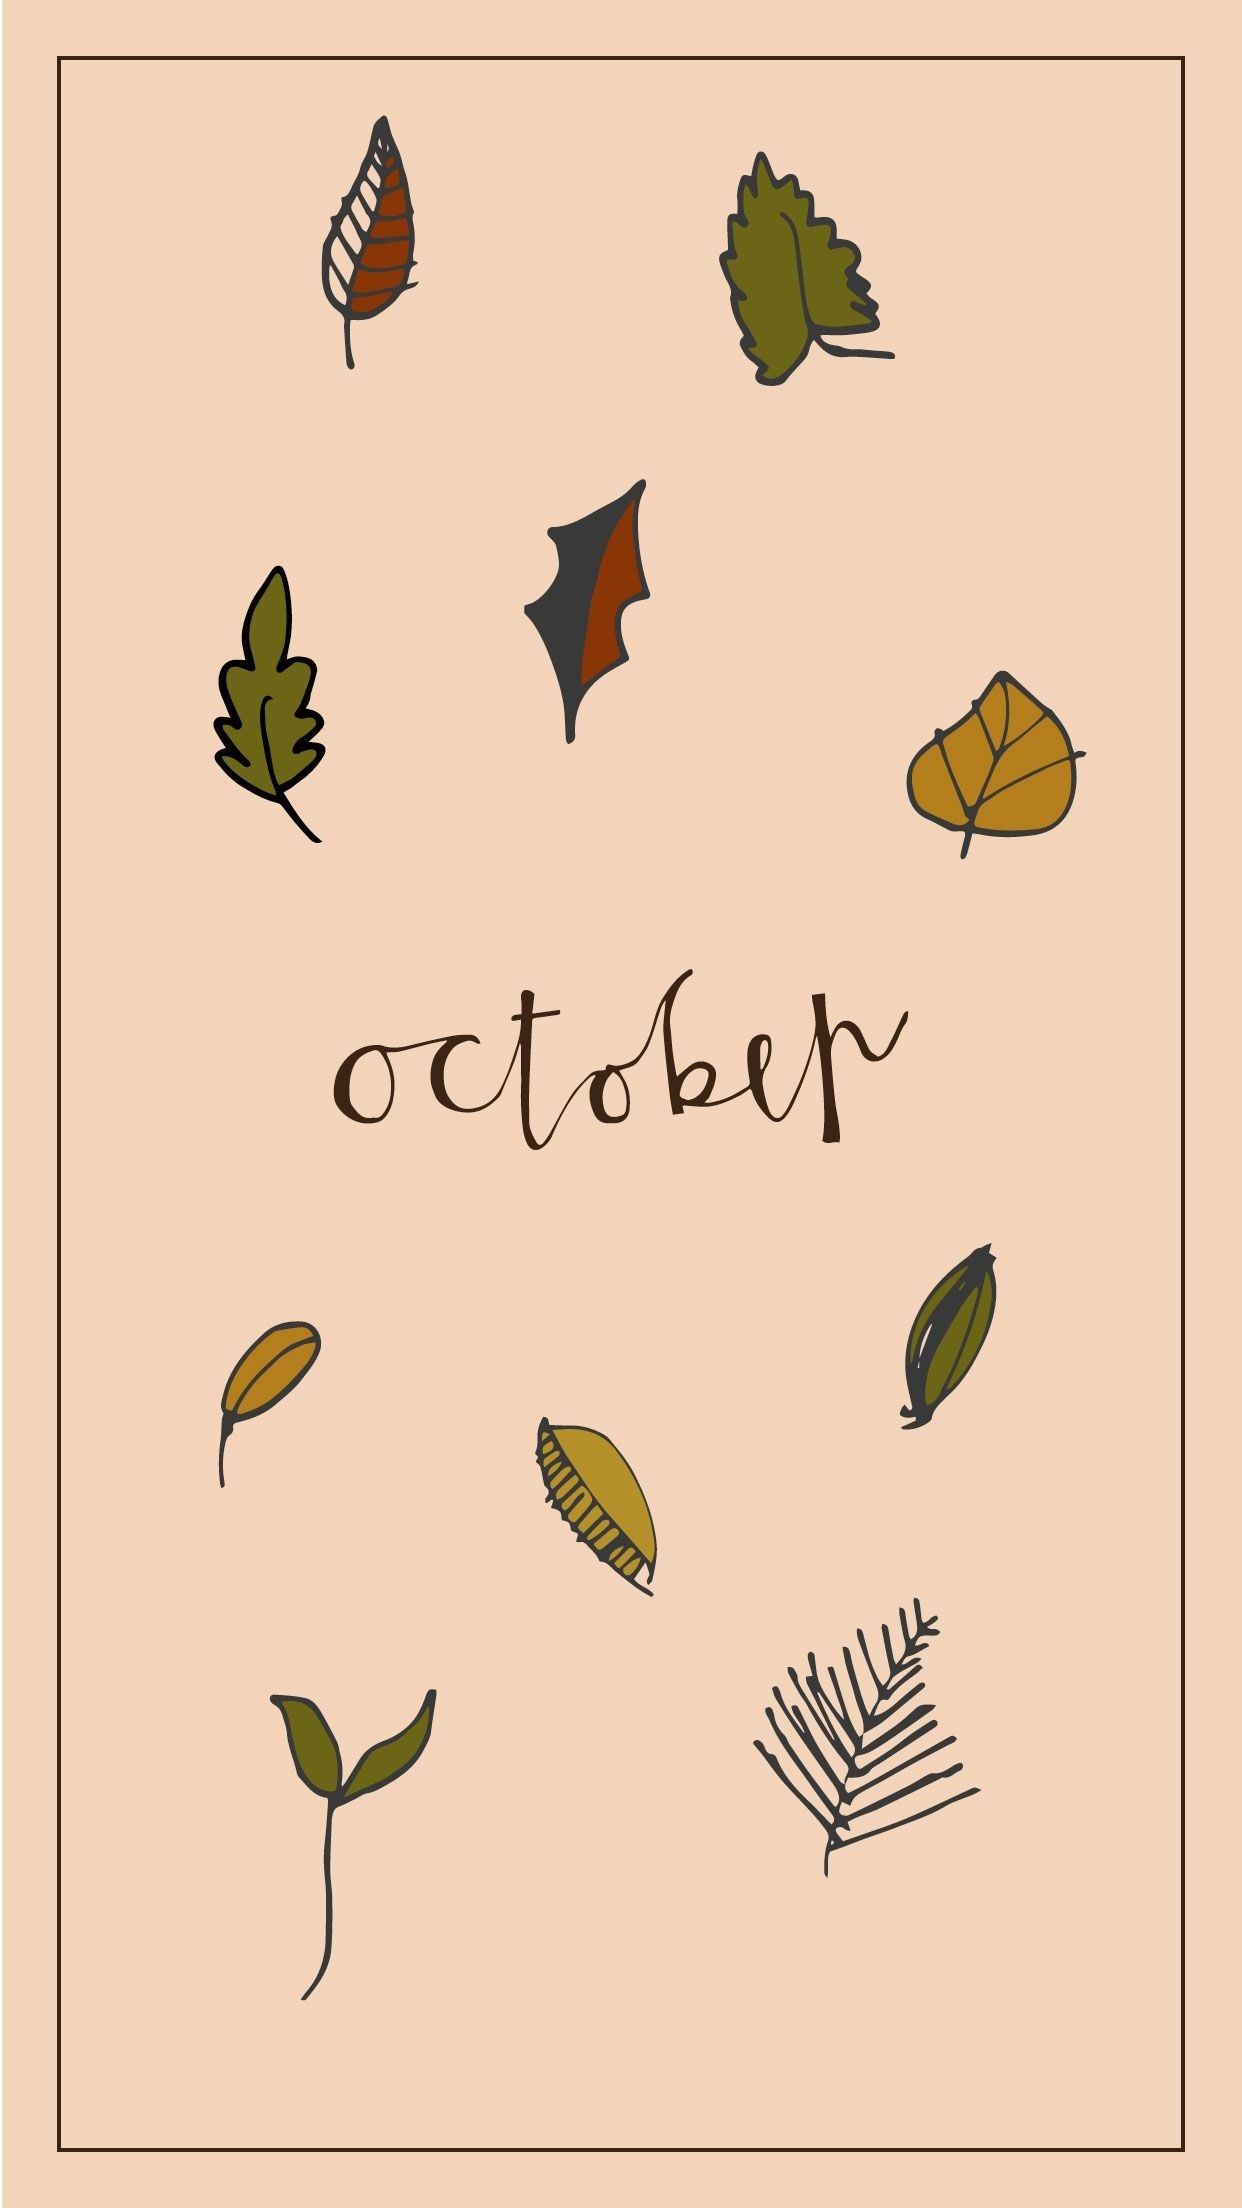 October Leaves Wallpaper Kolpaper Awesome Free Hd Wallpapers